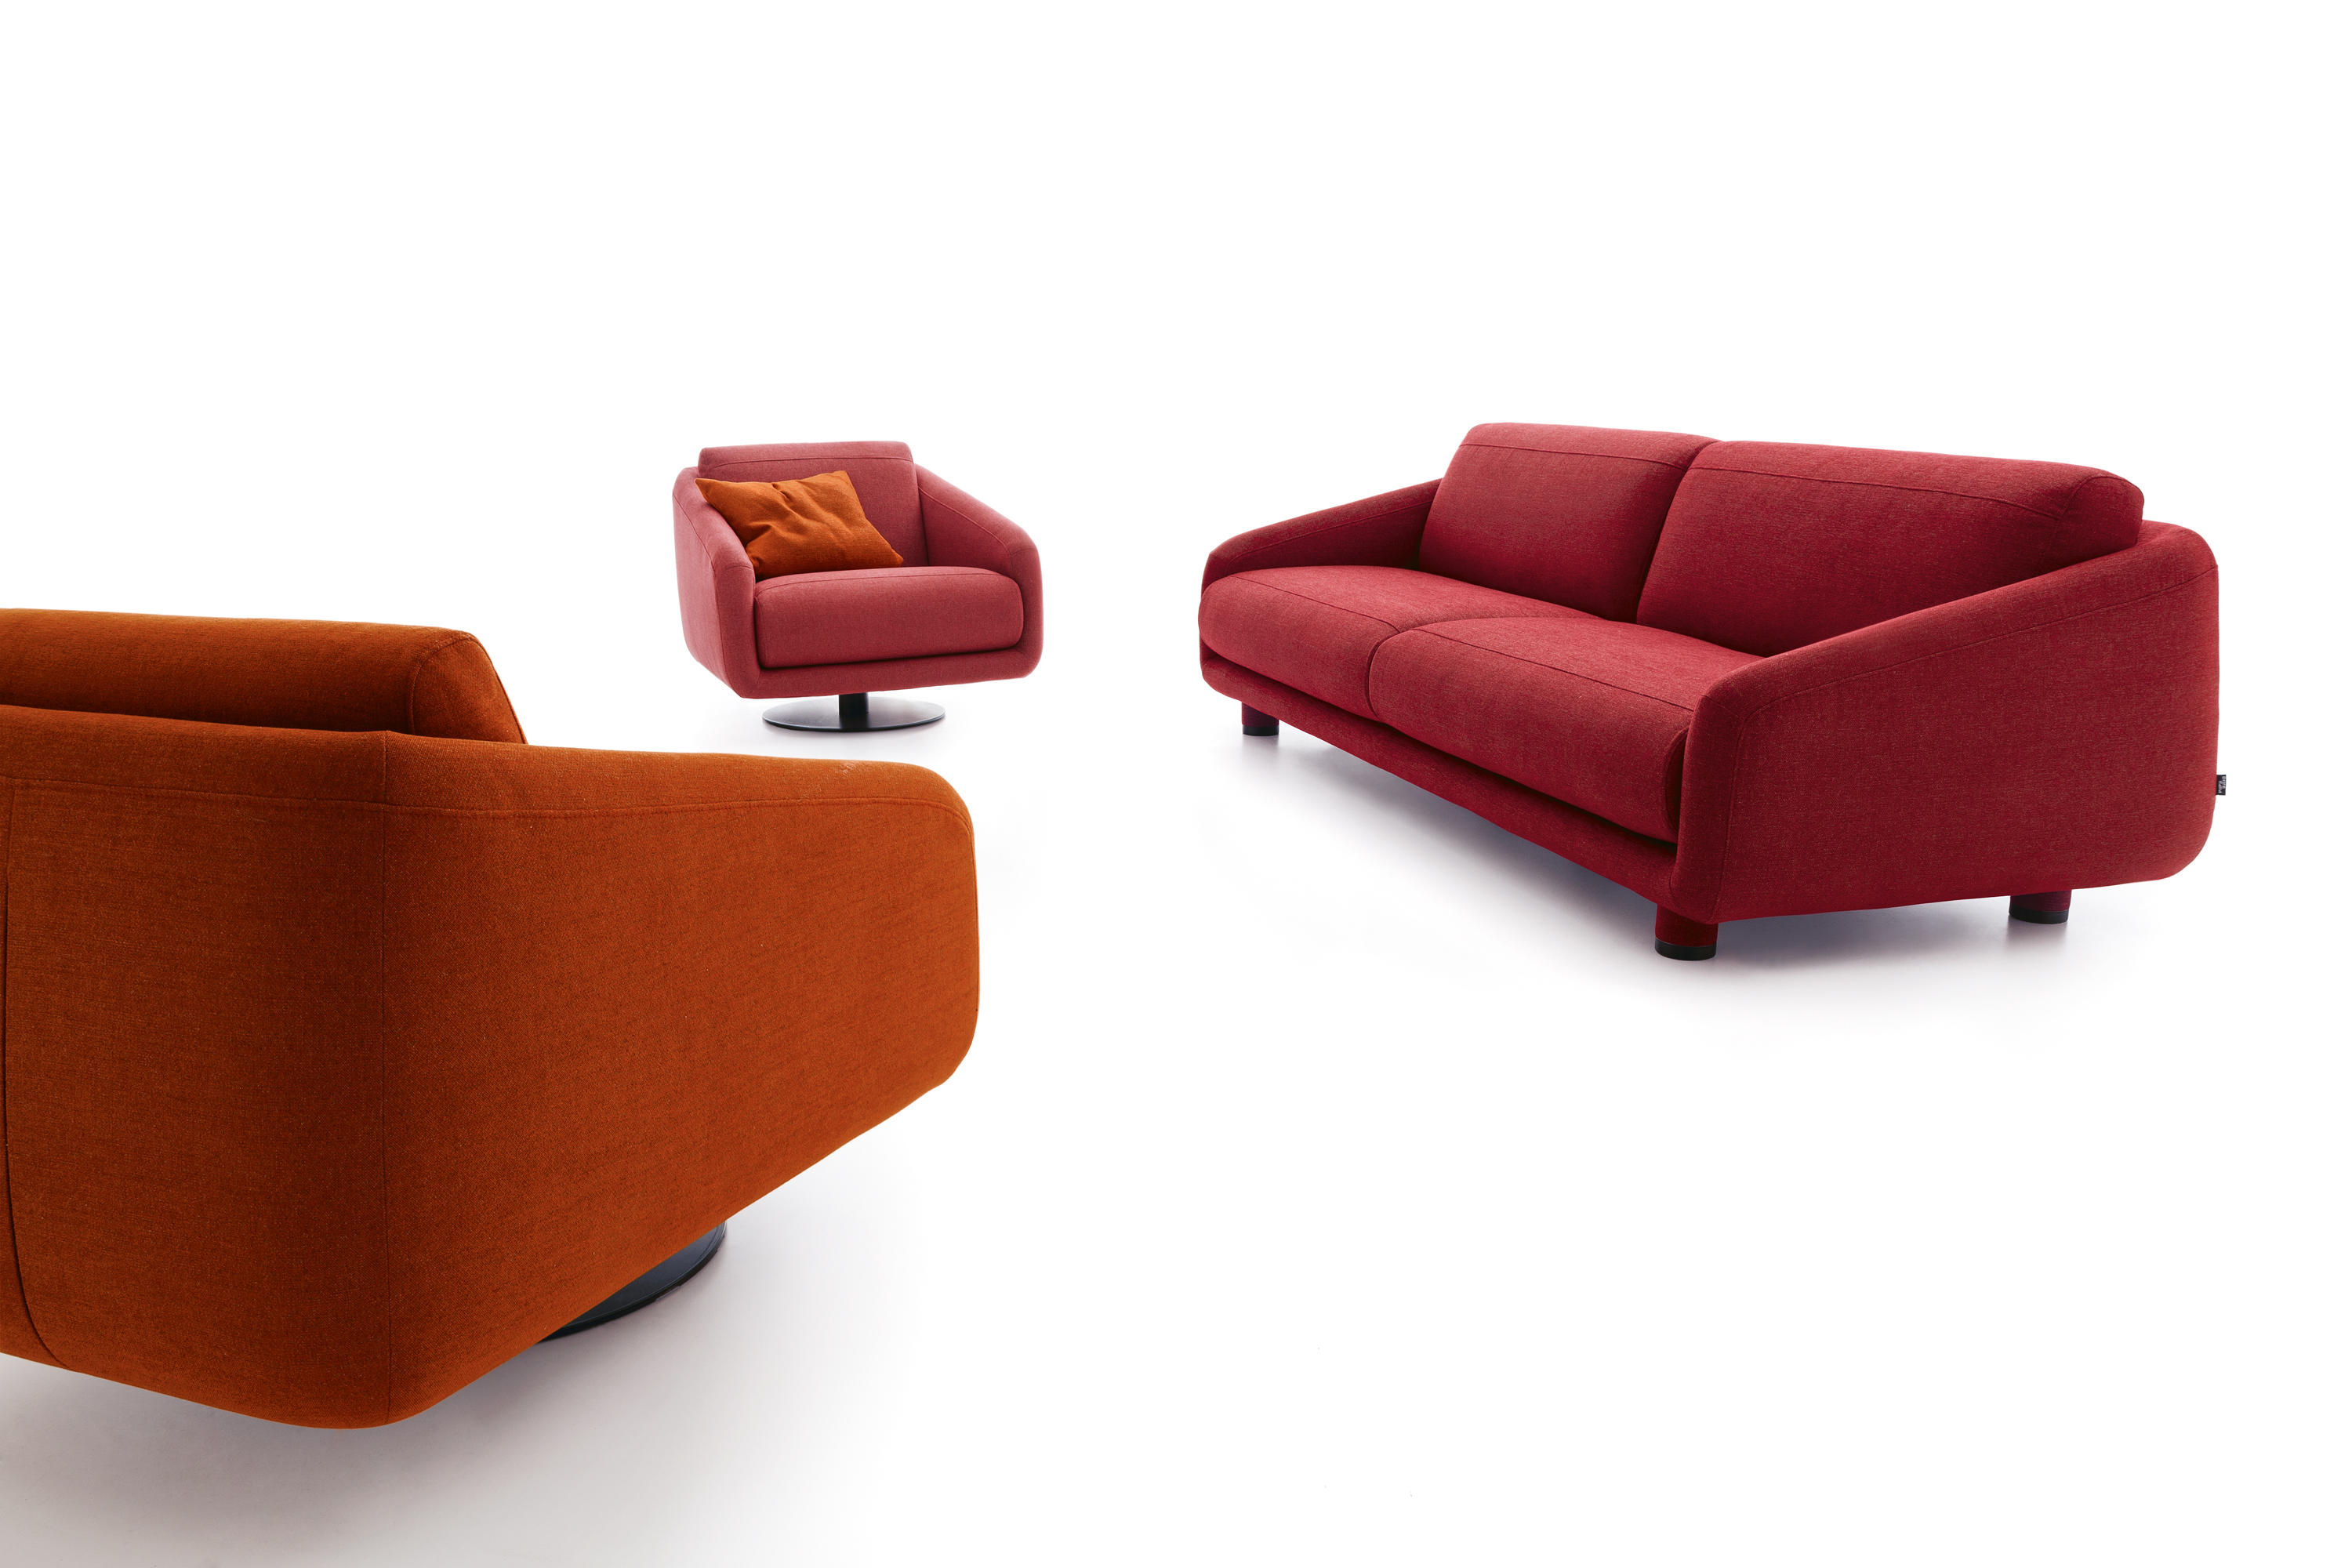 Class Sofa & Armchair by Carlo Colombo for DITRE ITALIA